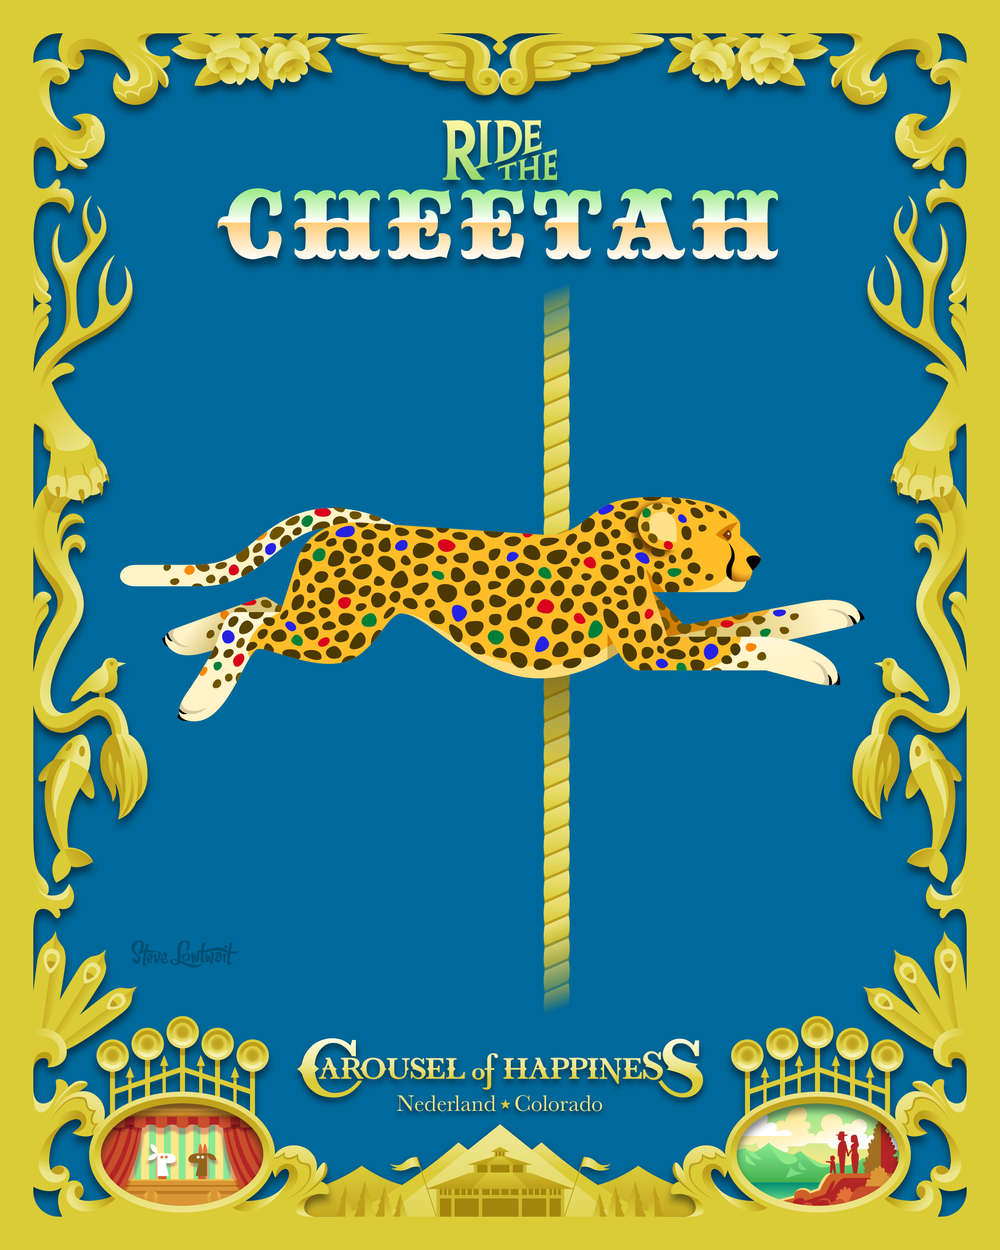 Ride the Cheetah